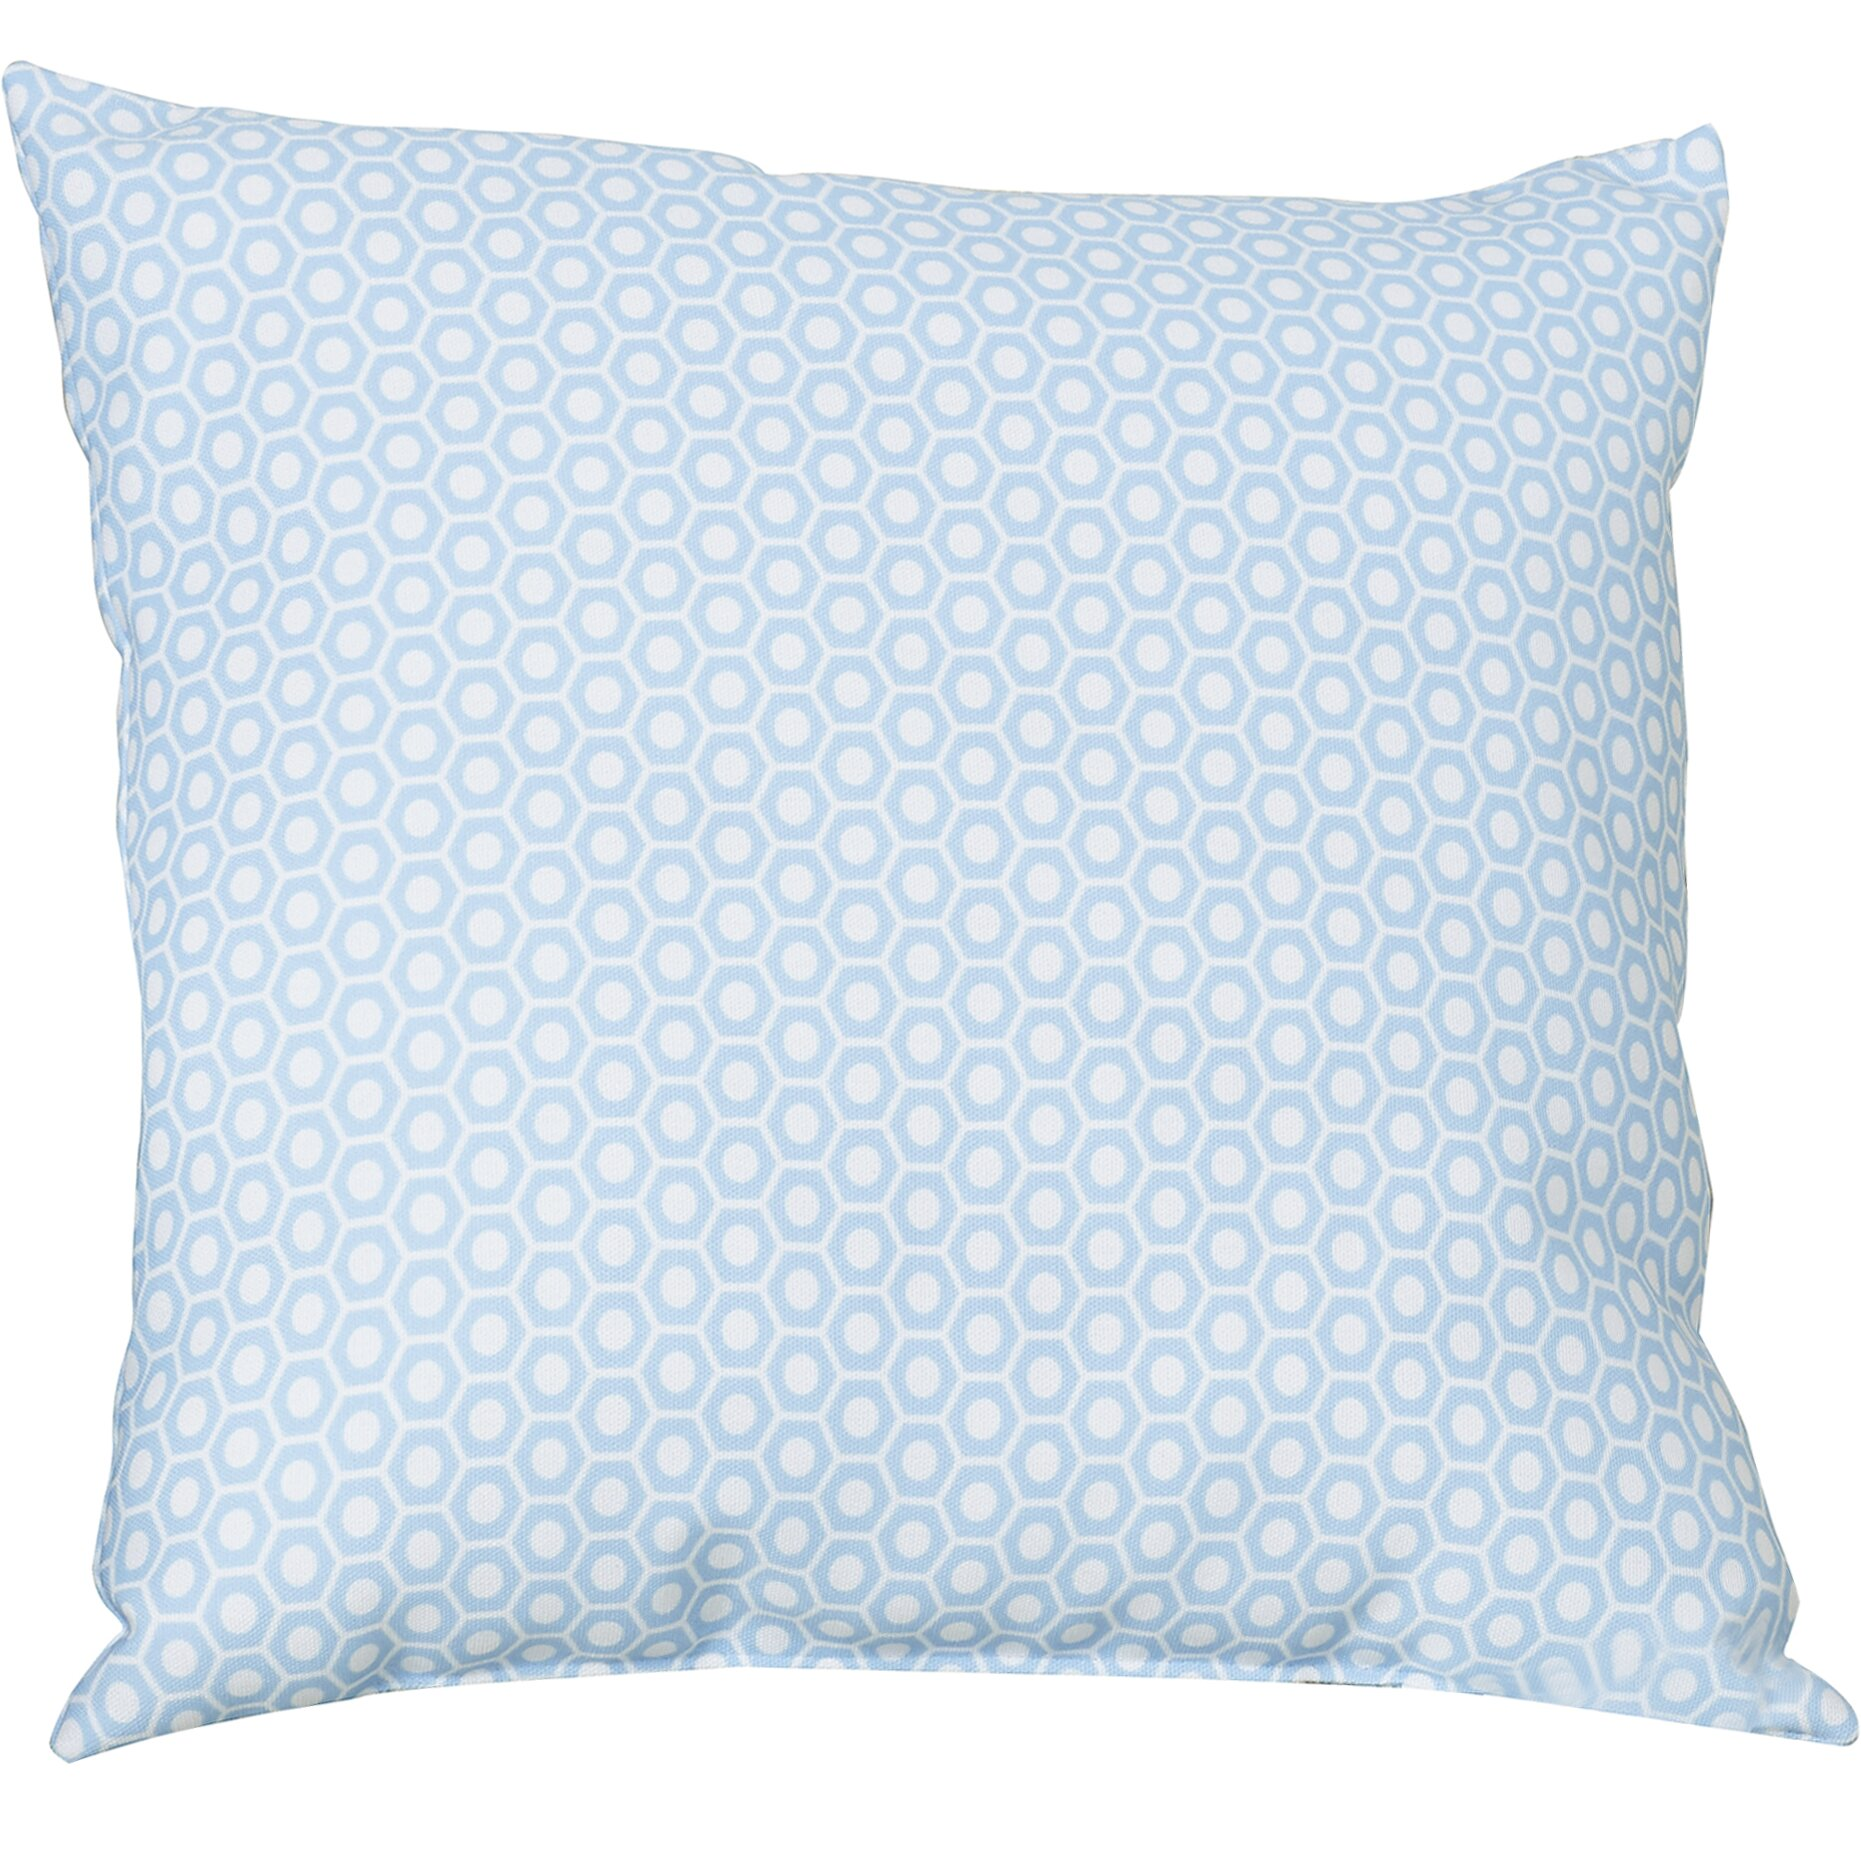 Max Studio Home Decorative Pillows : Brayden Studio Carignan Throw Pillow & Reviews Wayfair